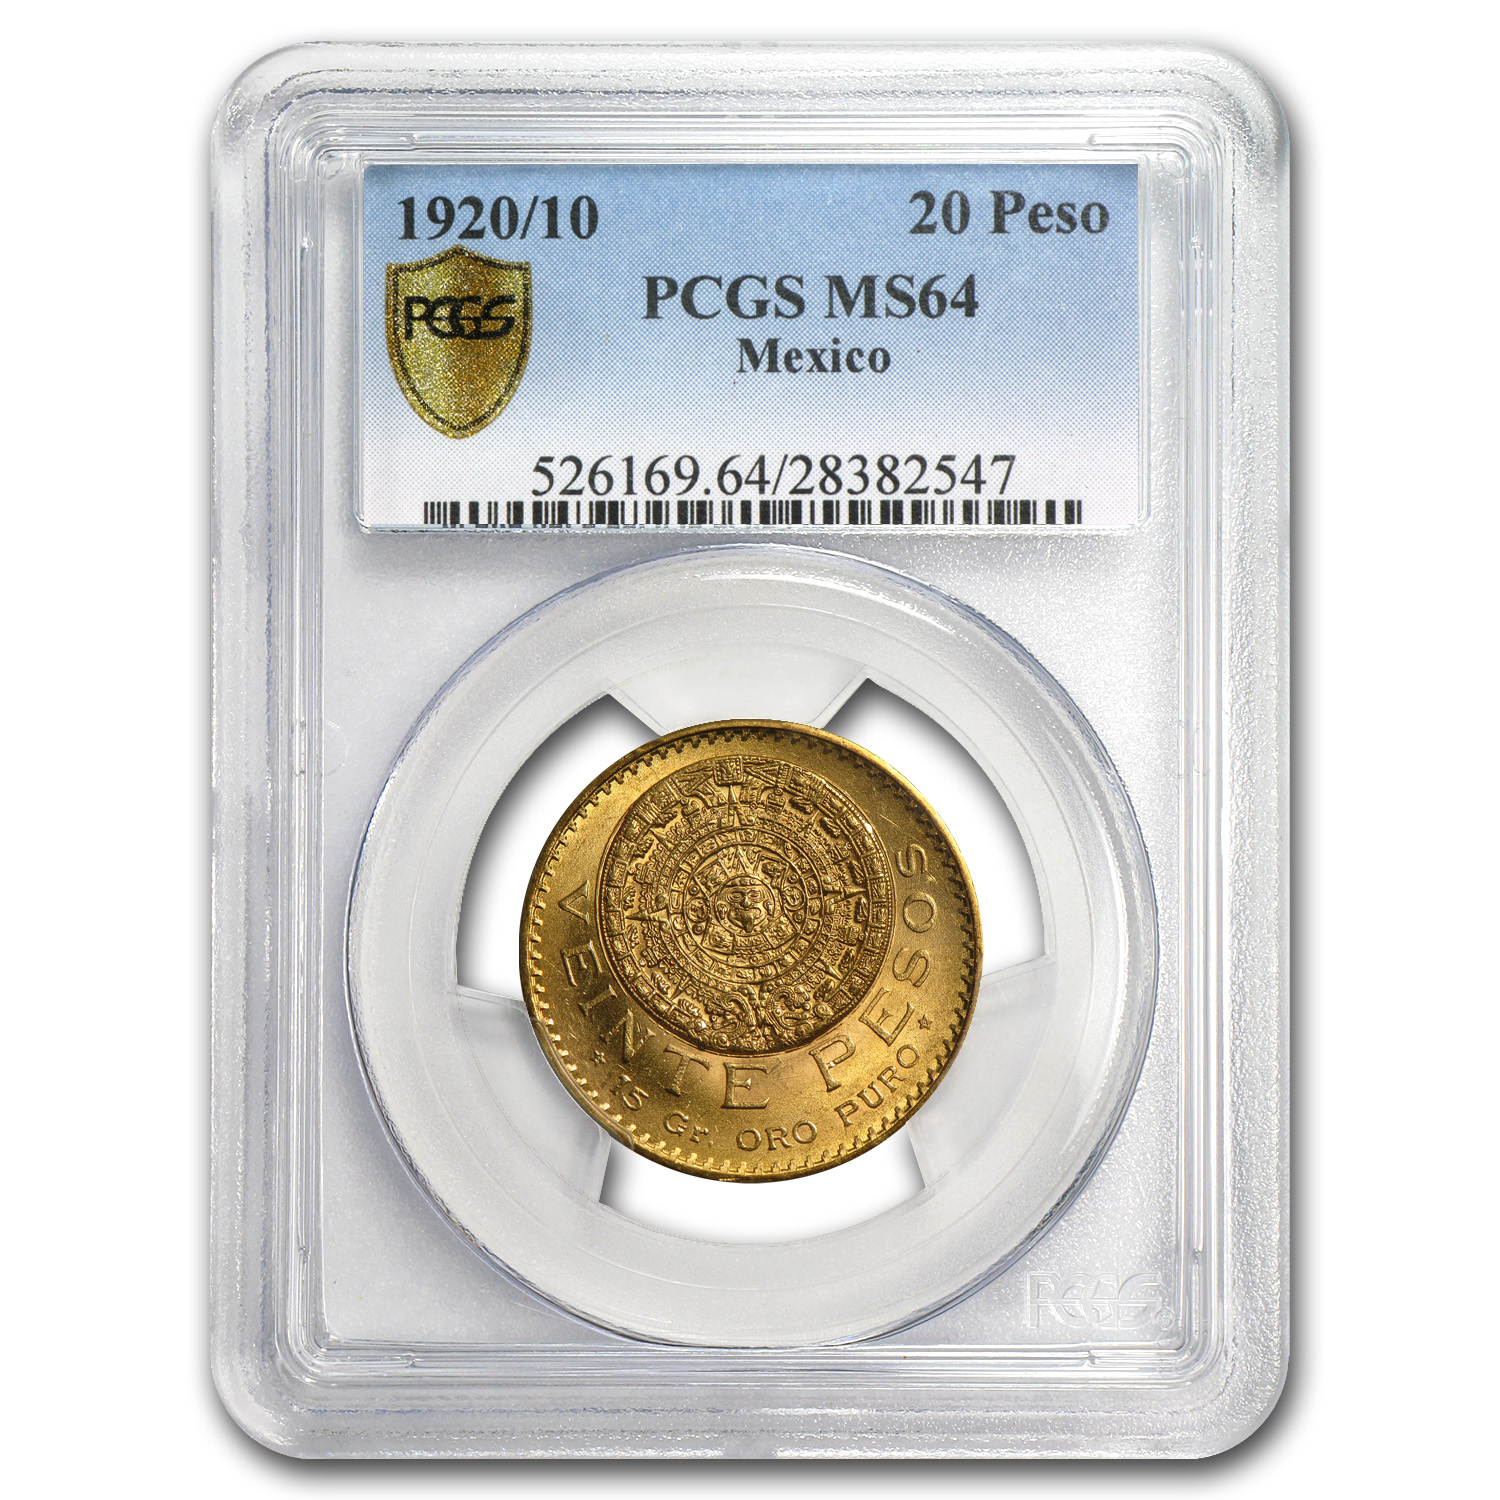 Mexico 1920/10 20 Pesos Gold MS-64 PCGS